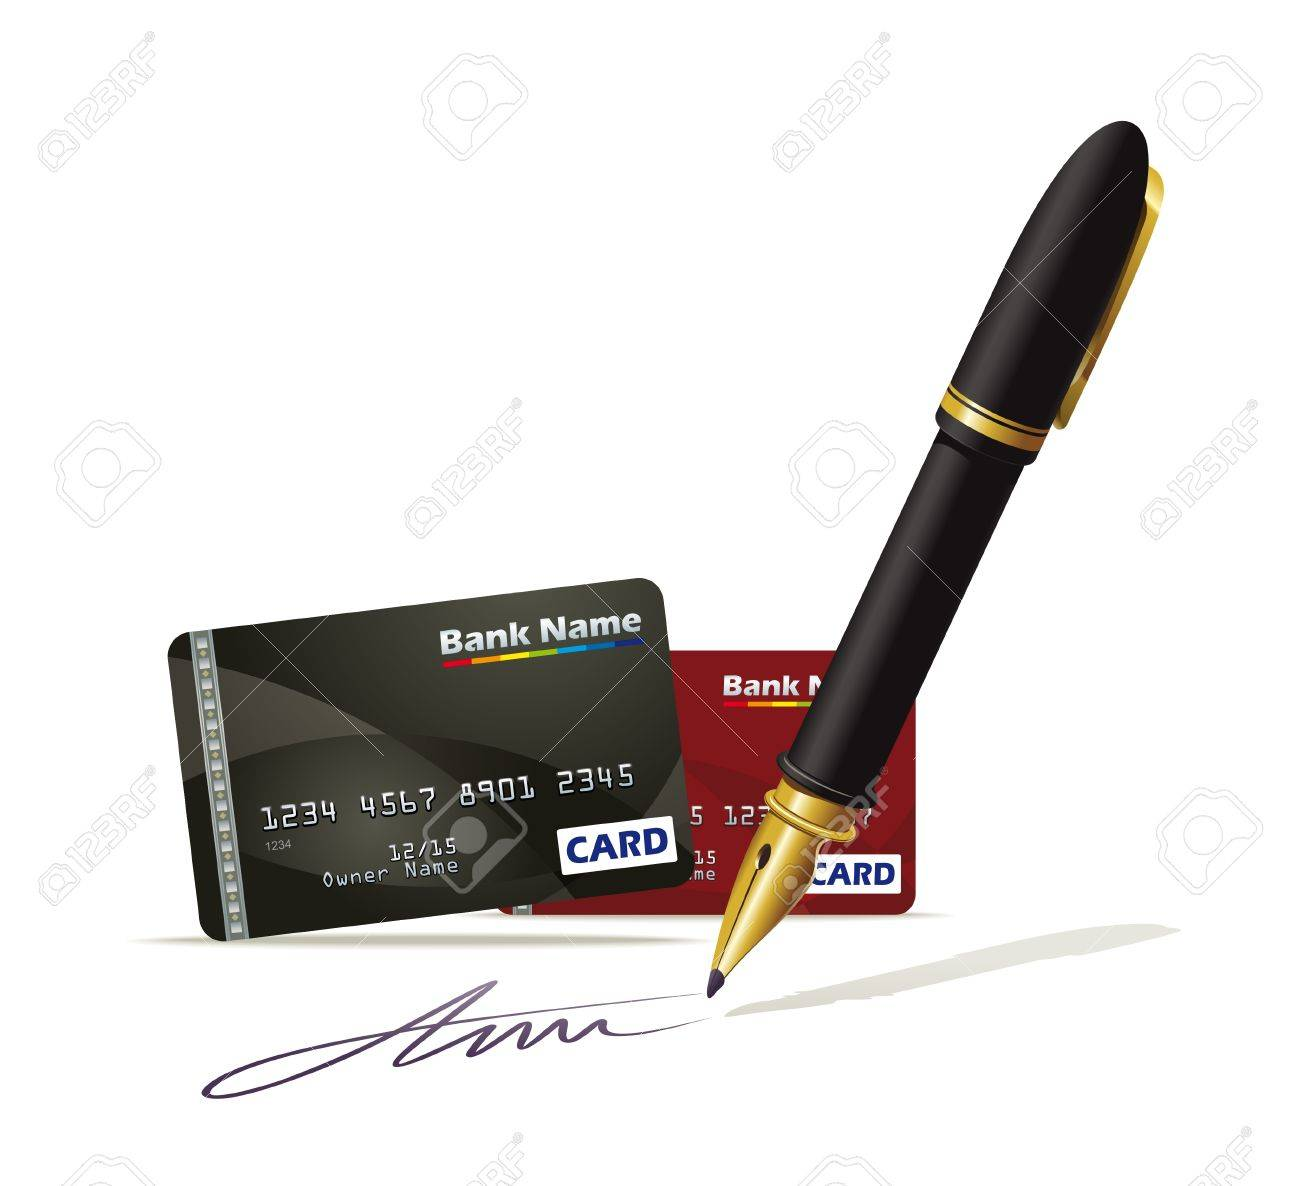 Illustration documenting plastic credit cards Stock Vector - 17467499